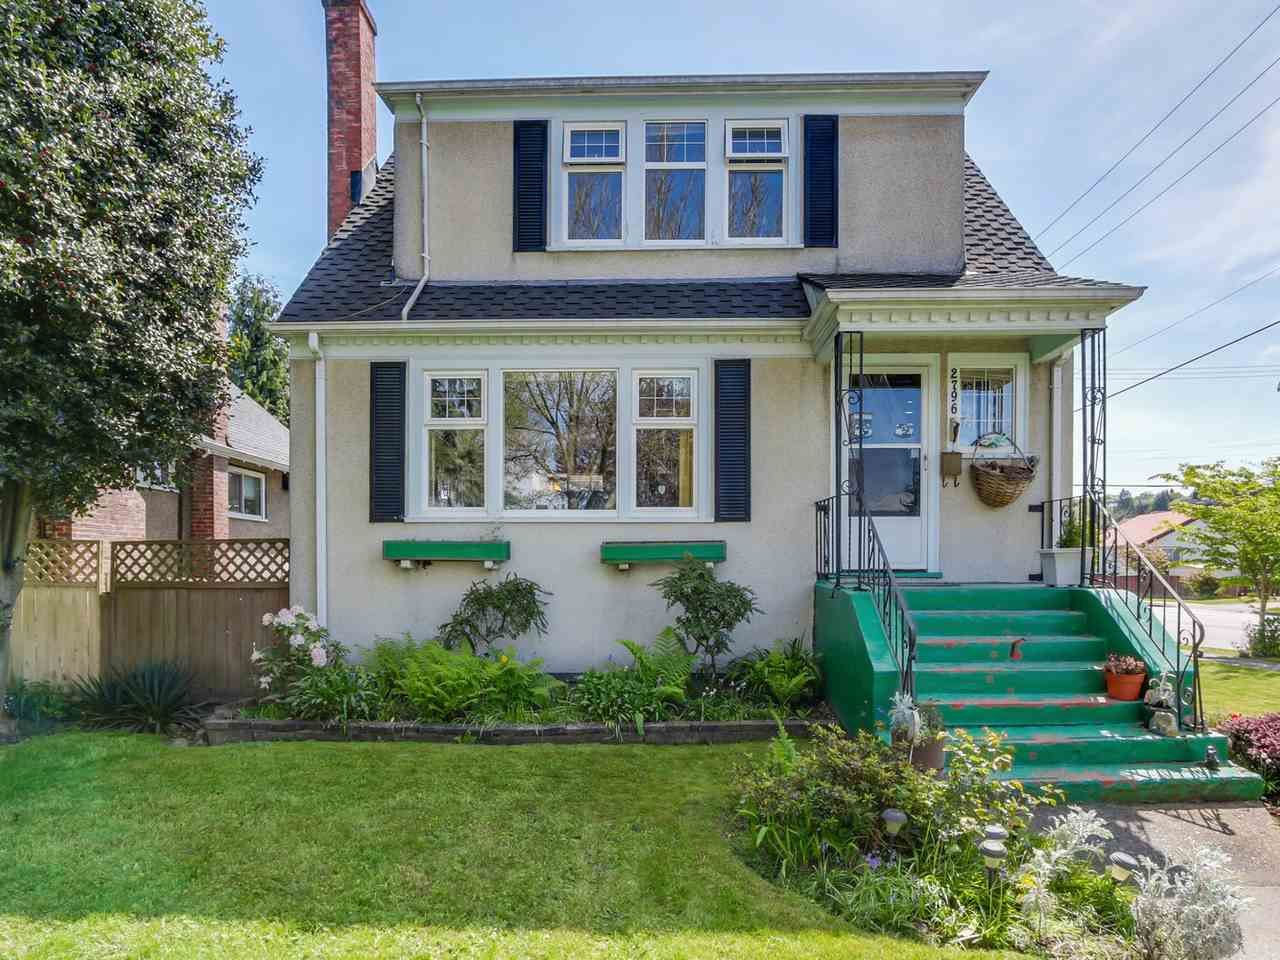 Photo 1: Photos: 2796 W 21ST Avenue in Vancouver: Arbutus House for sale (Vancouver West)  : MLS®# R2078868